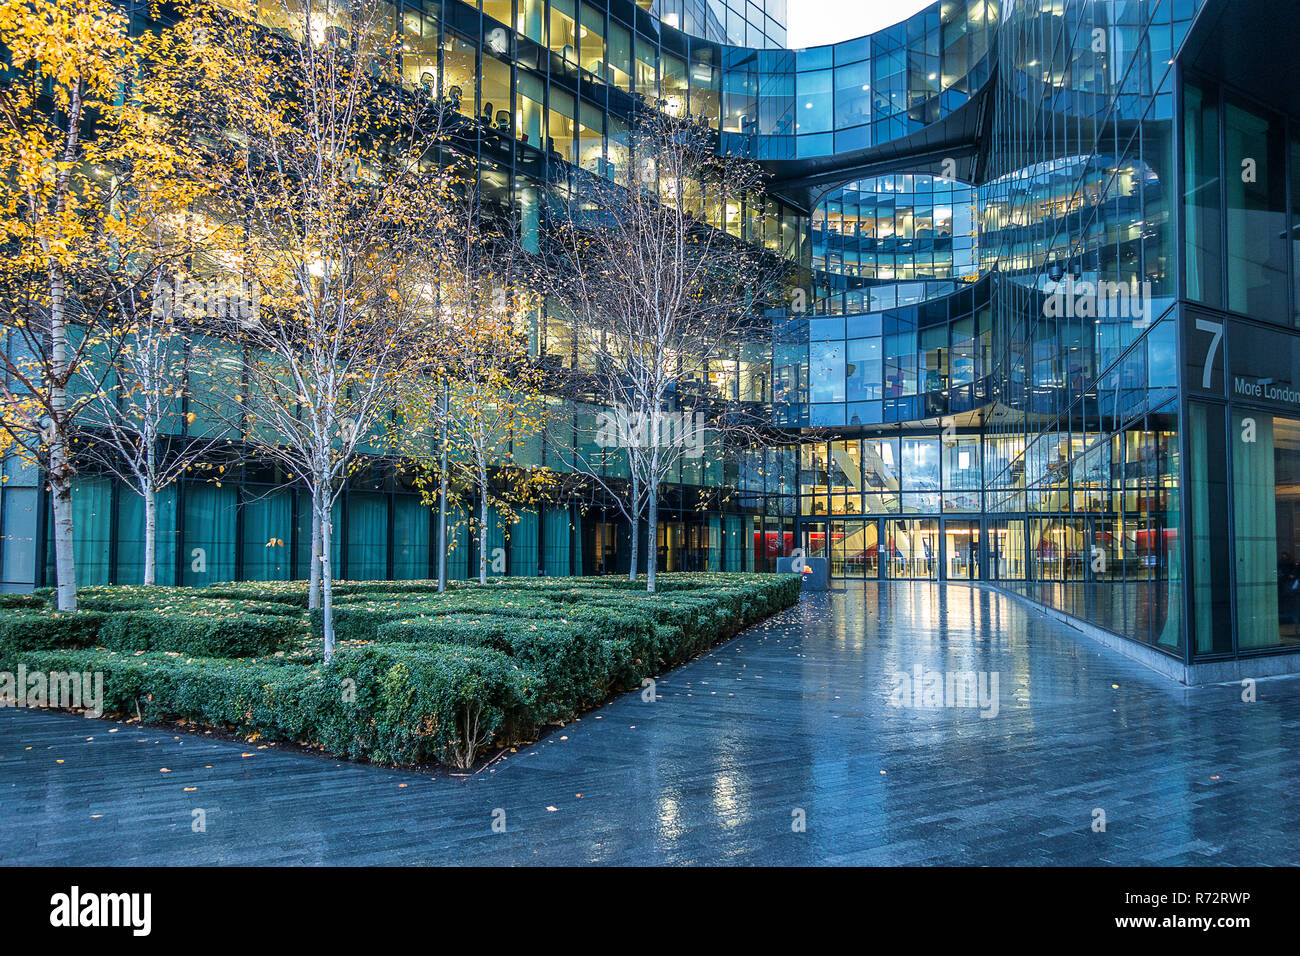 Price Waterhouse Coopers in More London riverside - Stock Image